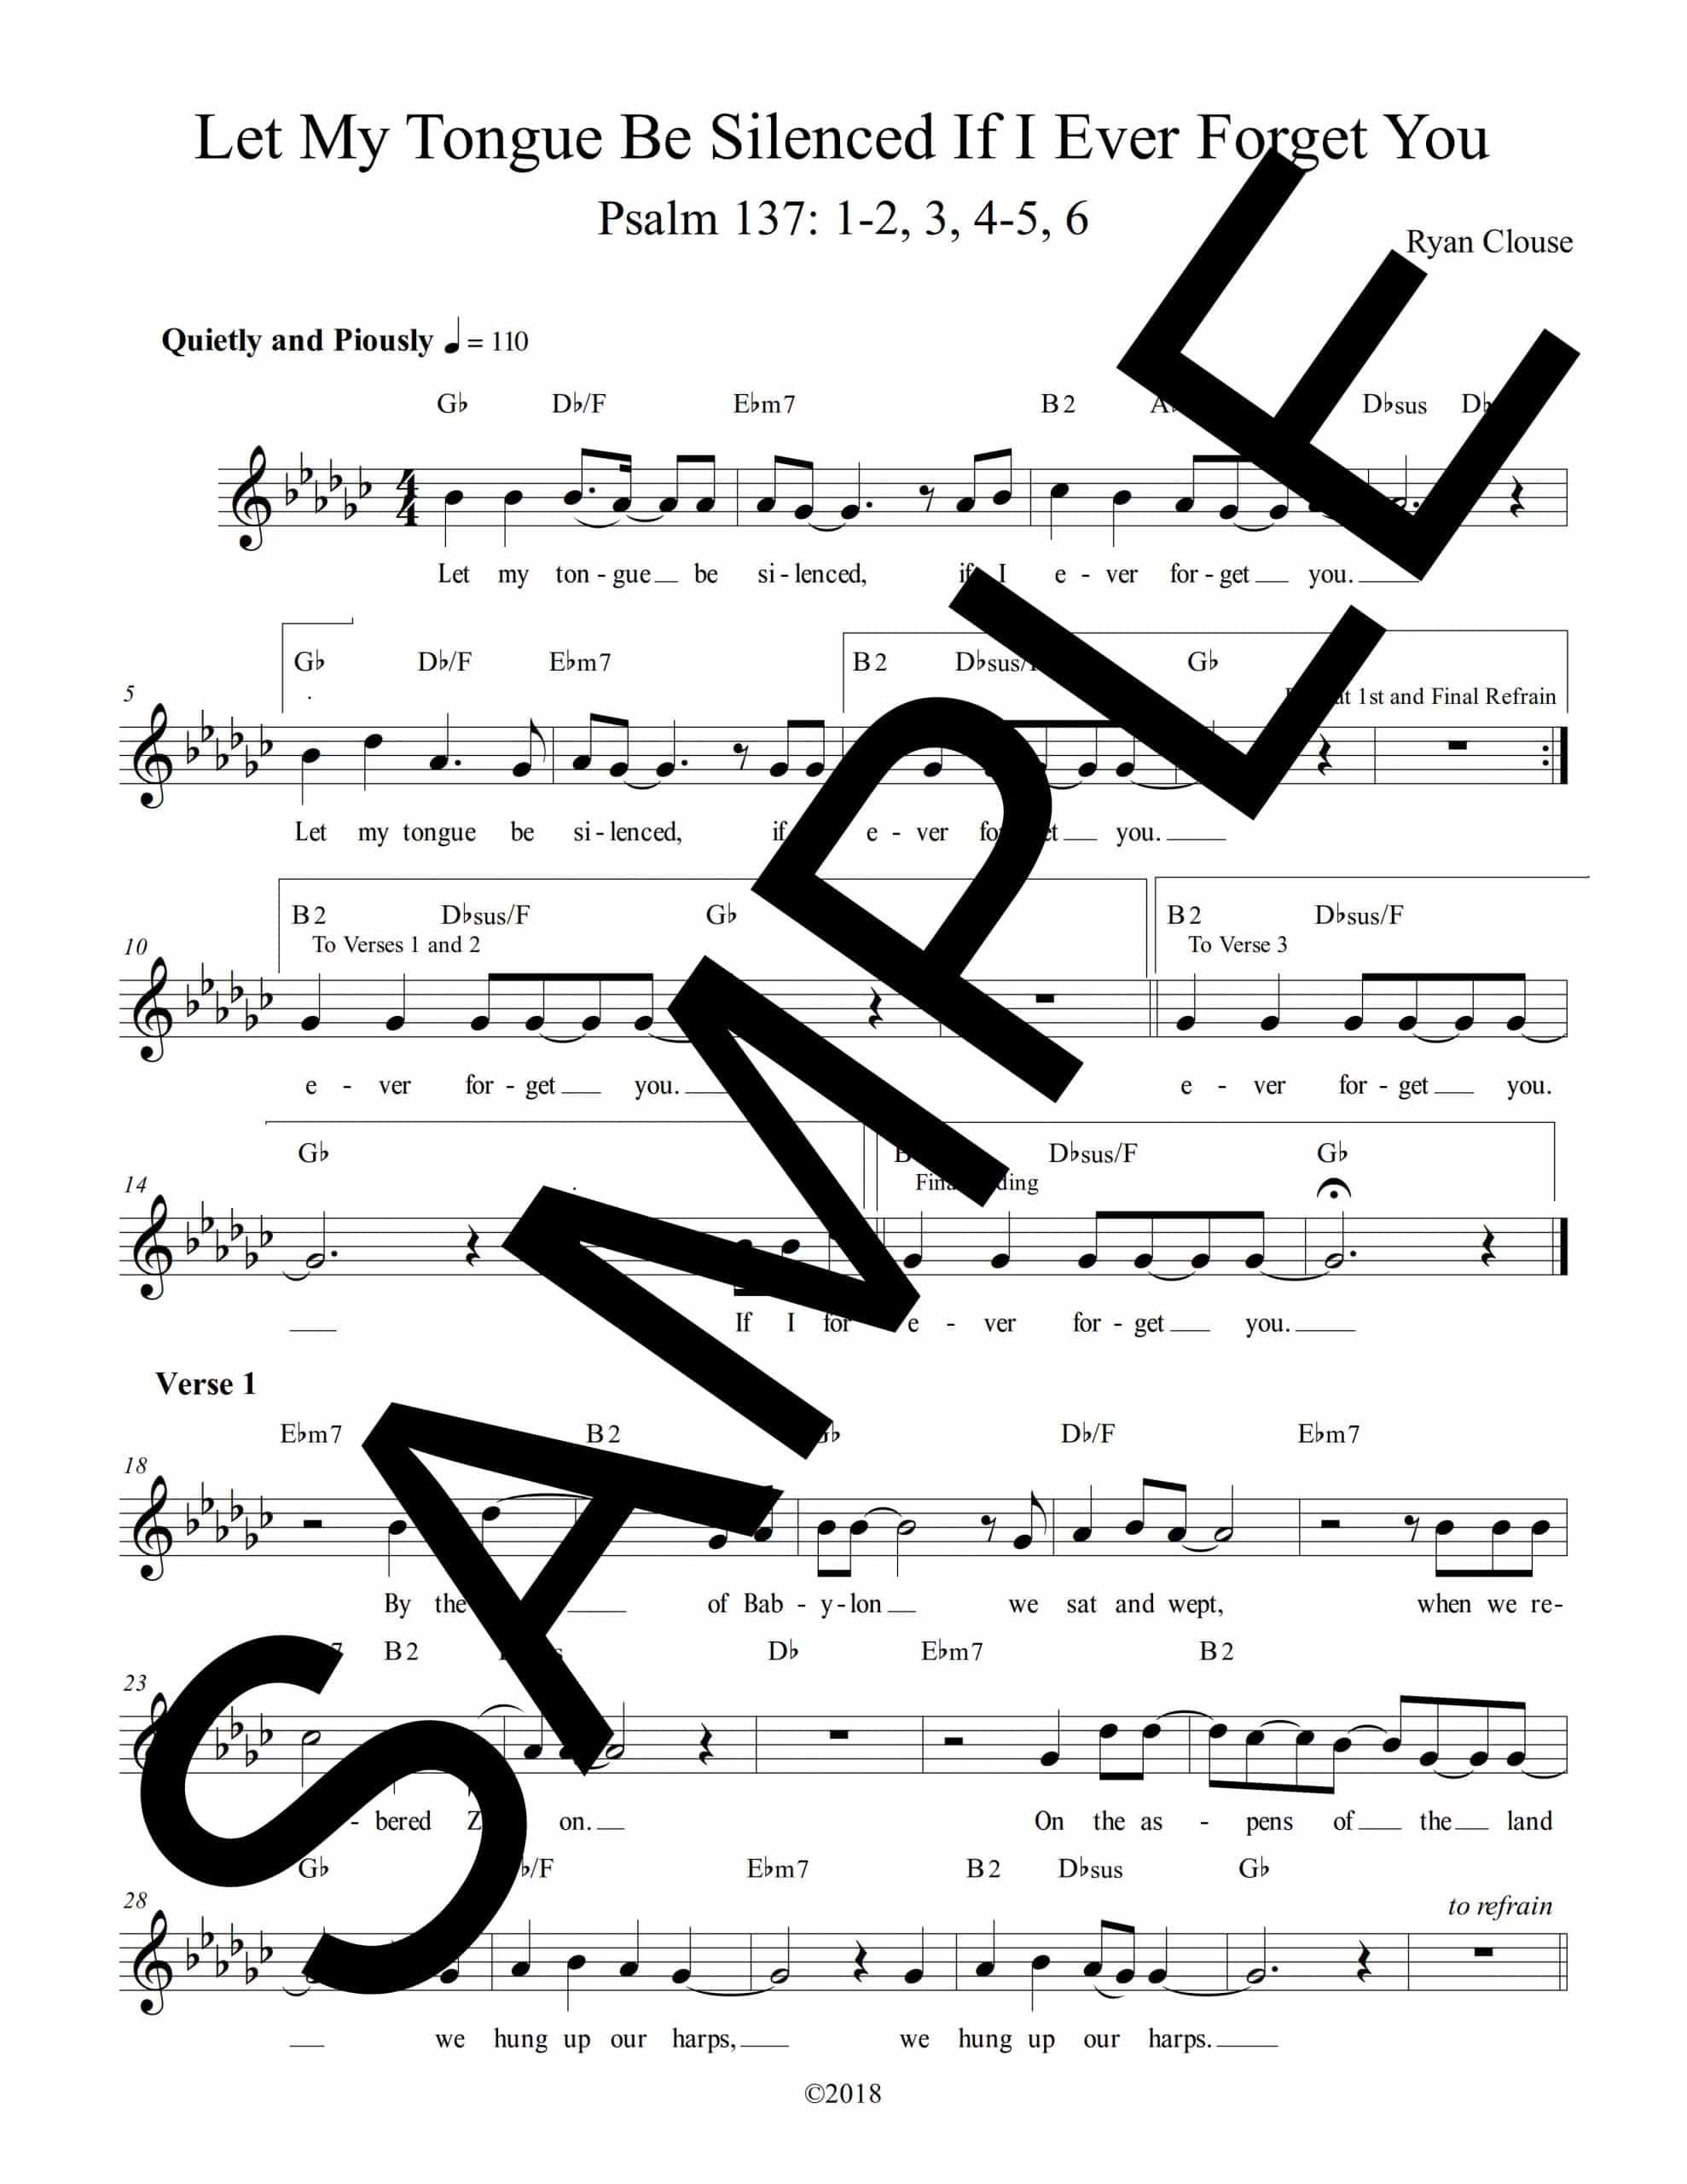 Psalm 137 Let My Tongue Be Silenced Clouse Sample Lead Sheet scaled